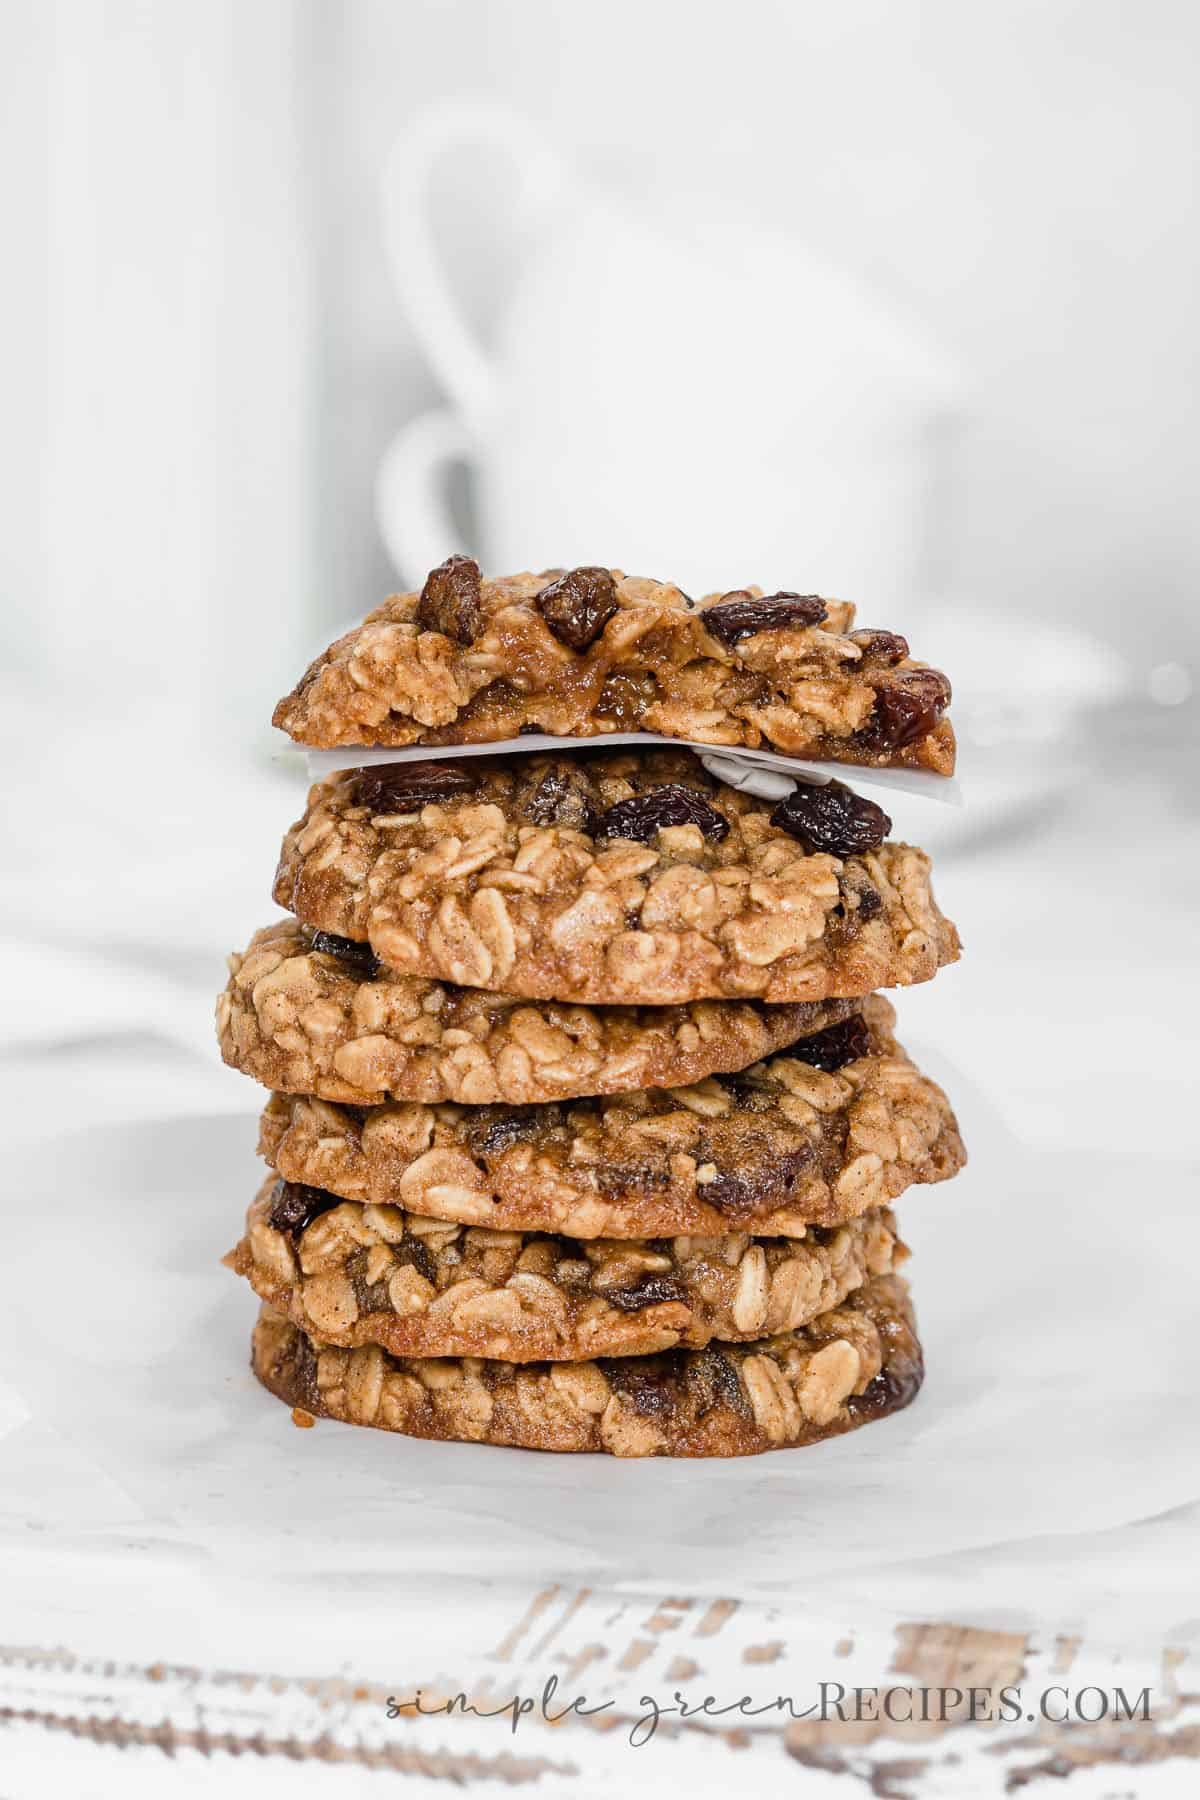 Stack of oatmeal raisin cookies on a parchment paper